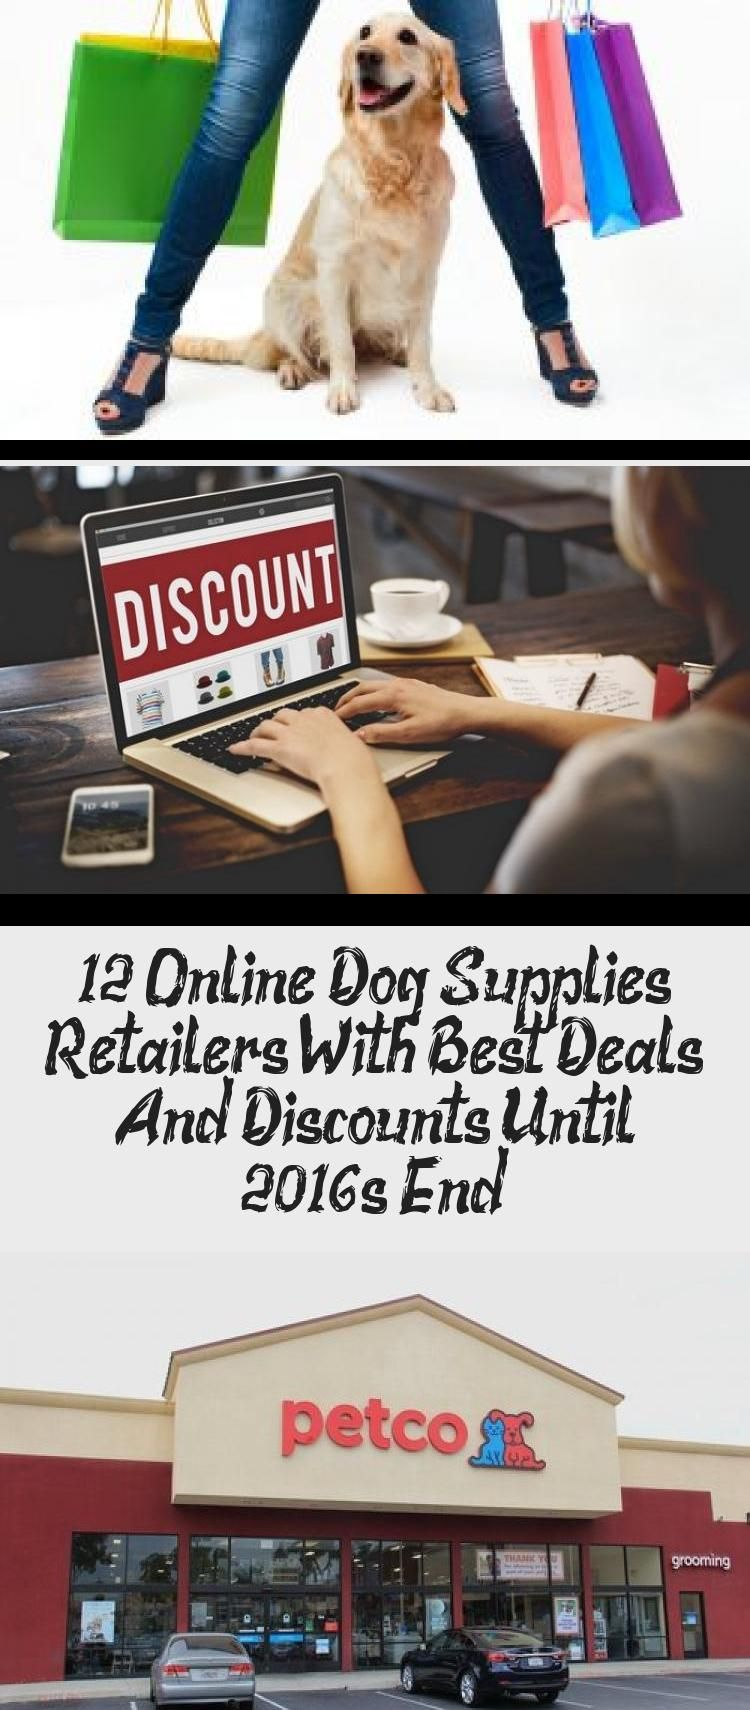 12 Online Dog Supplies Retailers With Best Deals And Discounts